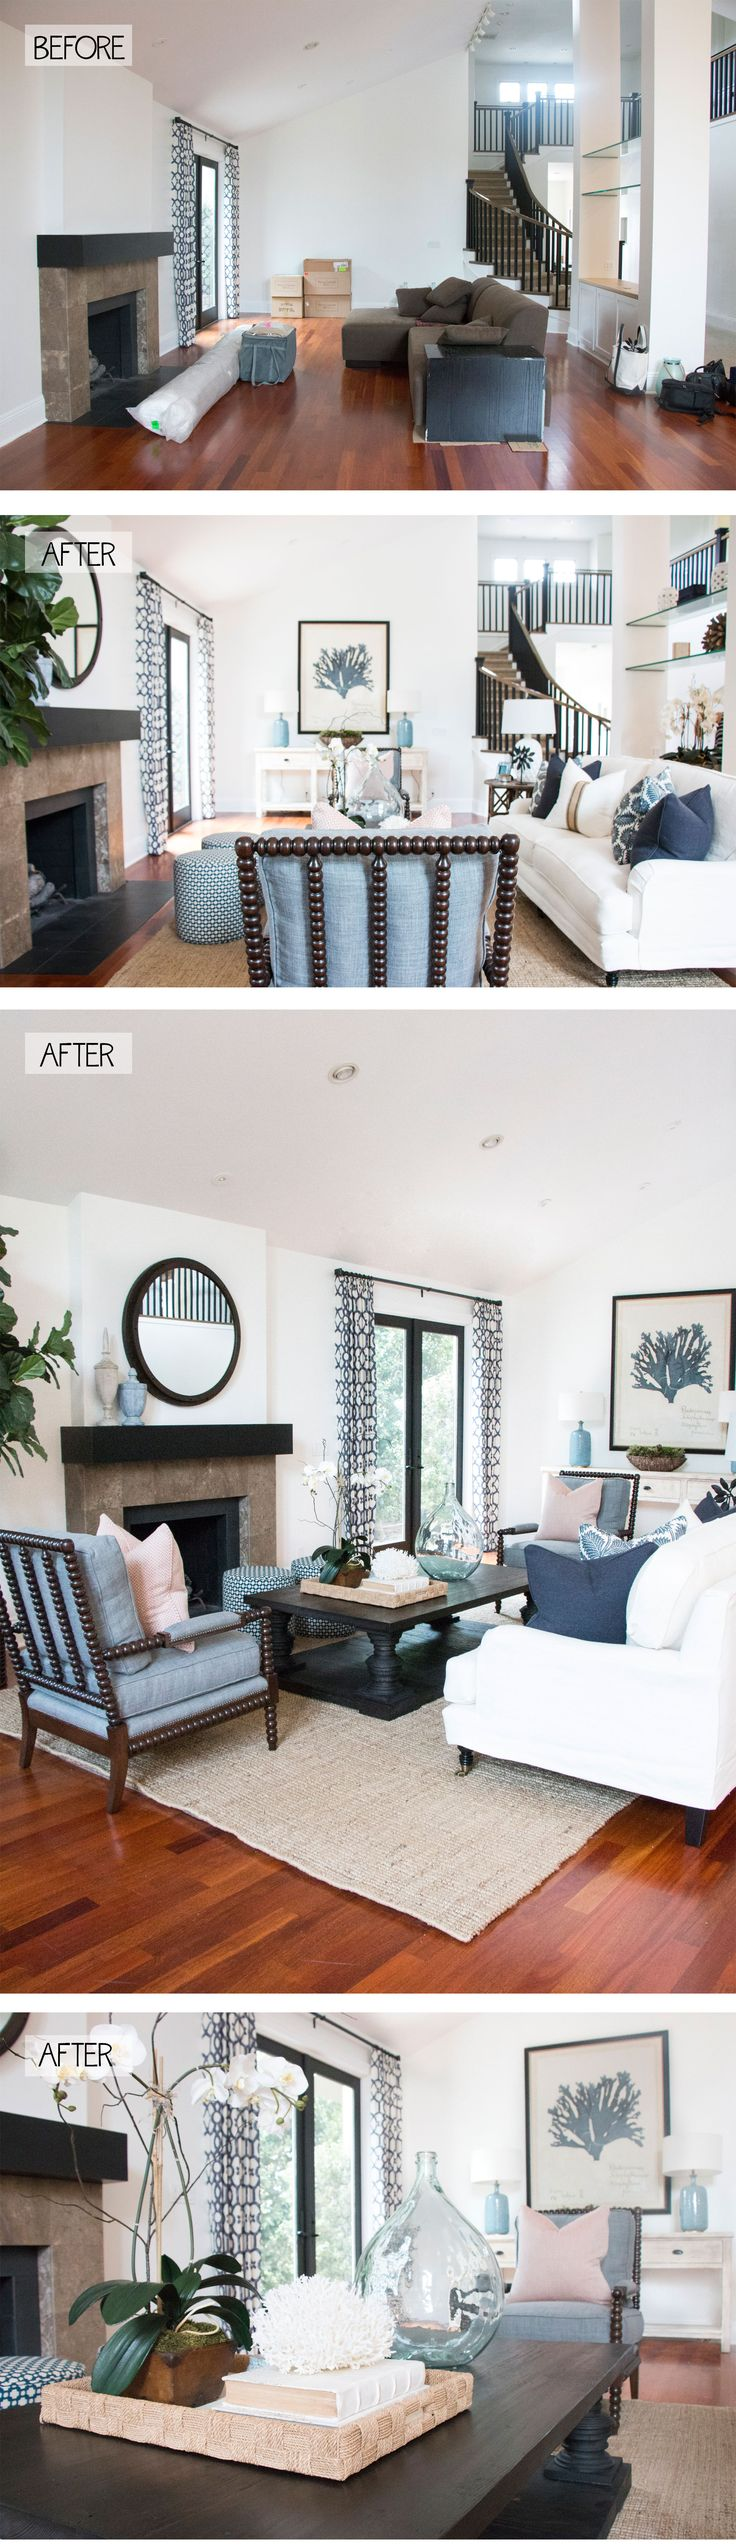 BEFORE And AFTER Rug PlacementCurtain PatternsCoastal Living RoomsLiving Room